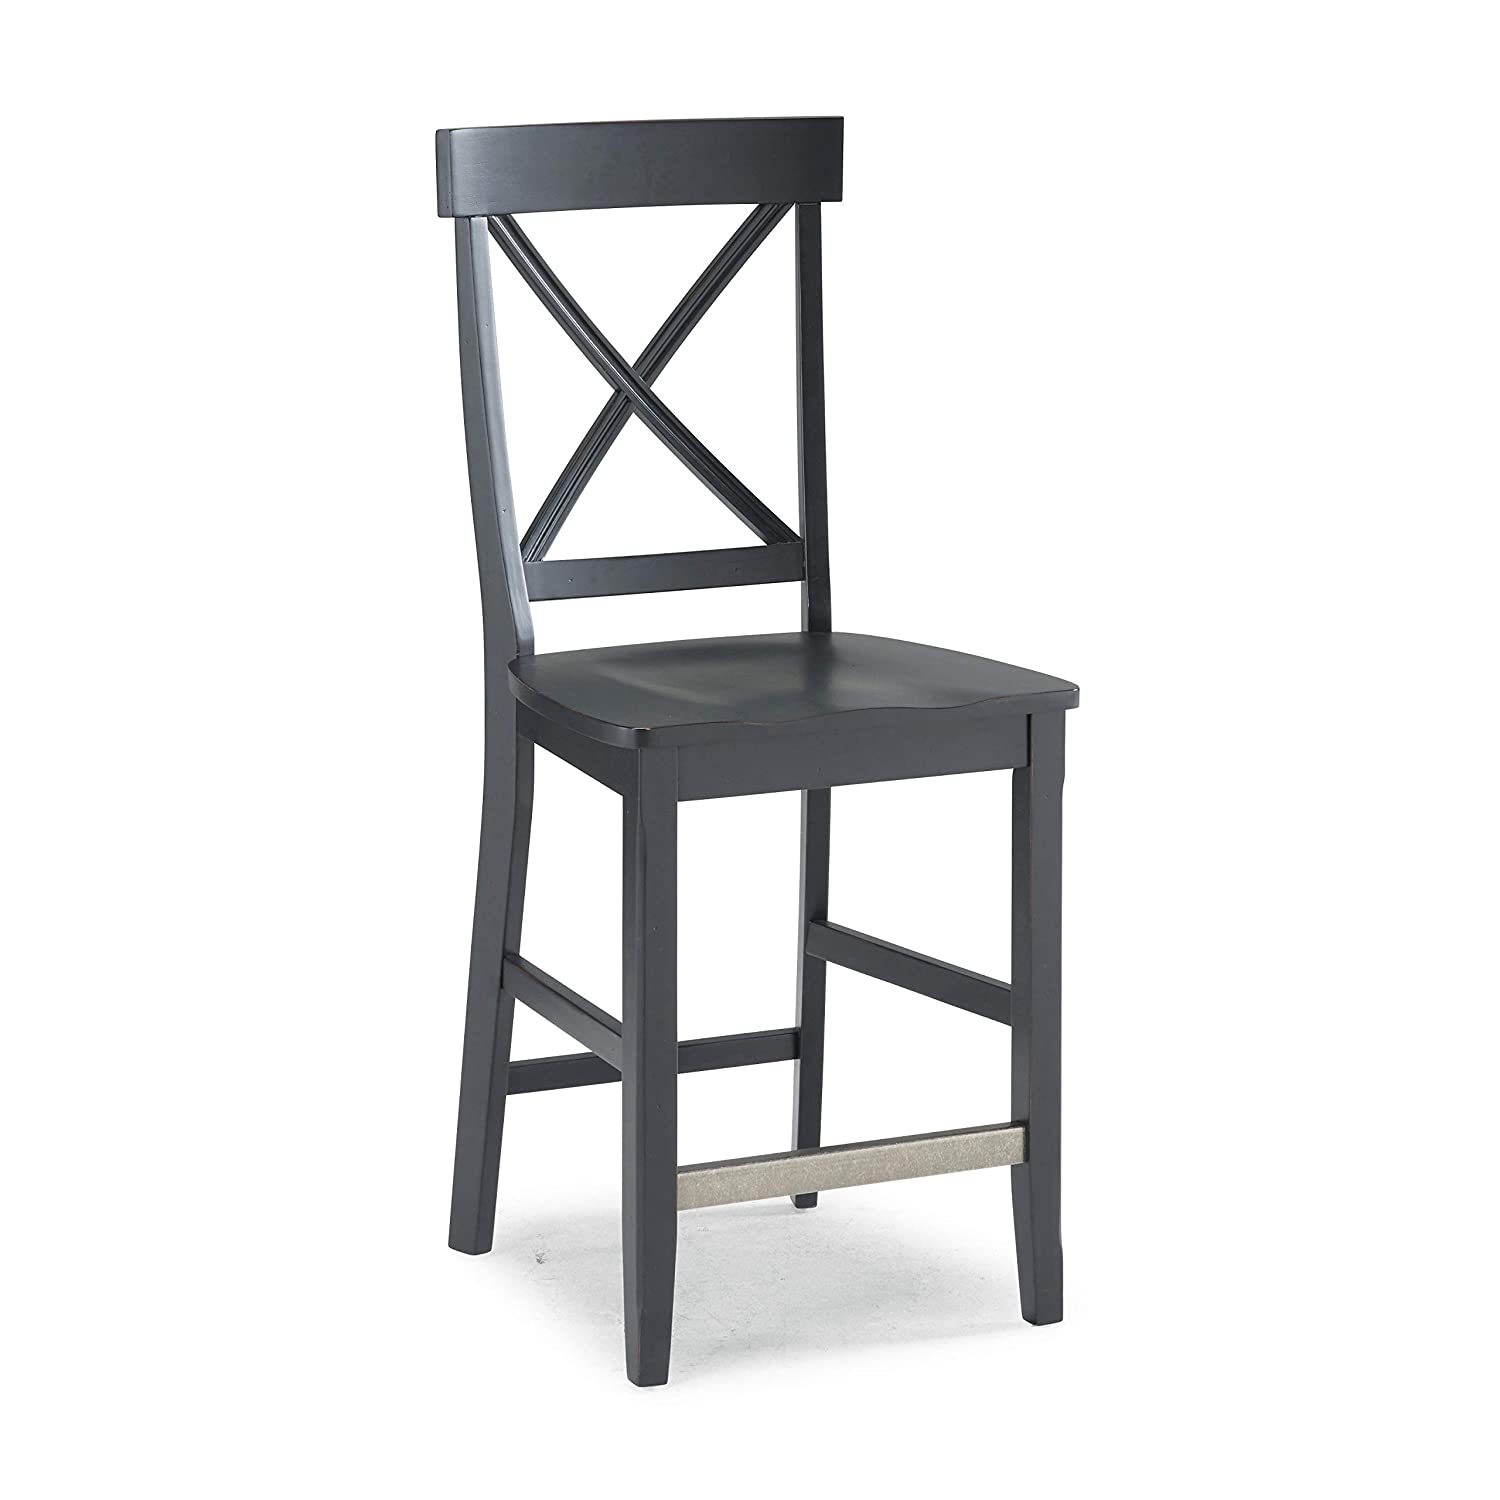 Home Styles 5033-89 Nantucket Bar Stool, Distressed Black Finish, 24-Inch